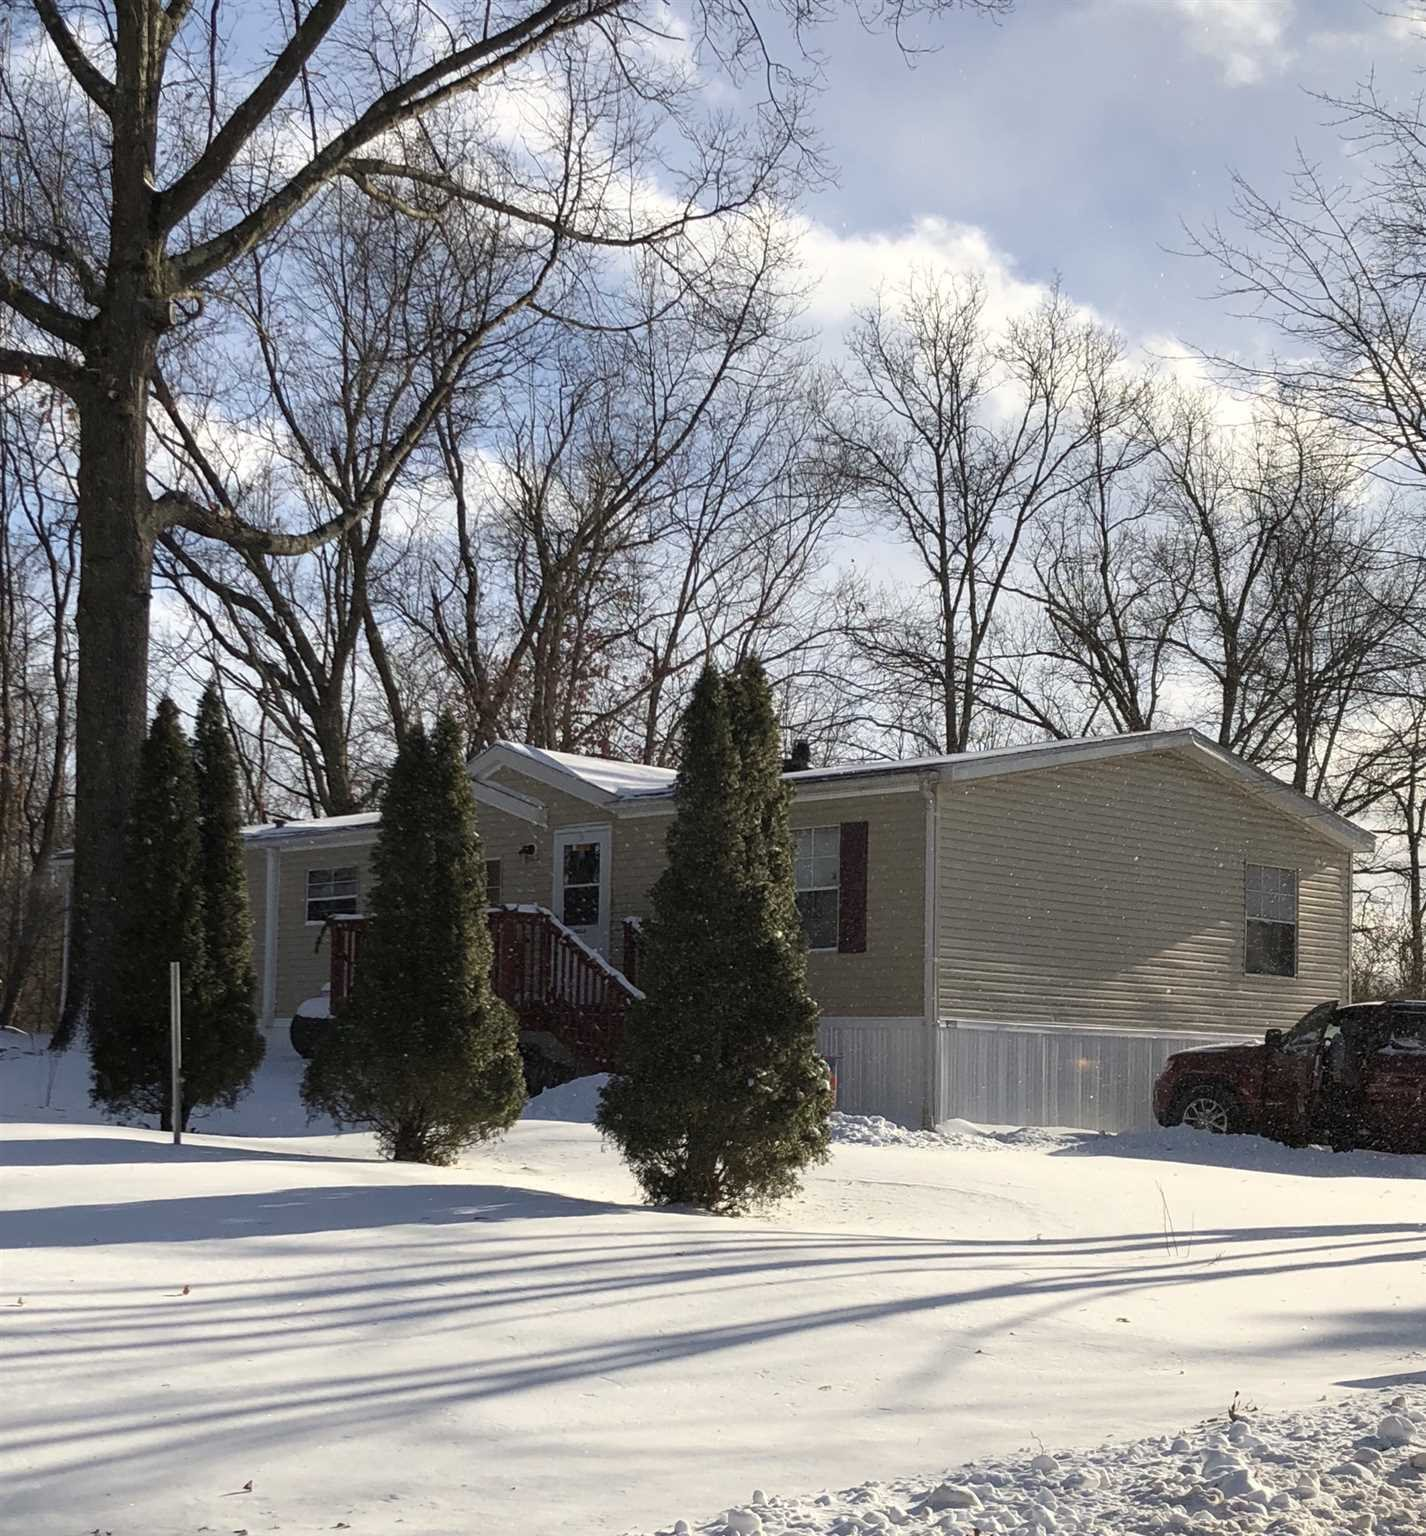 Single Family Home for Sale at 256 RAY 256 RAY Plattekill, New York 12589 United States